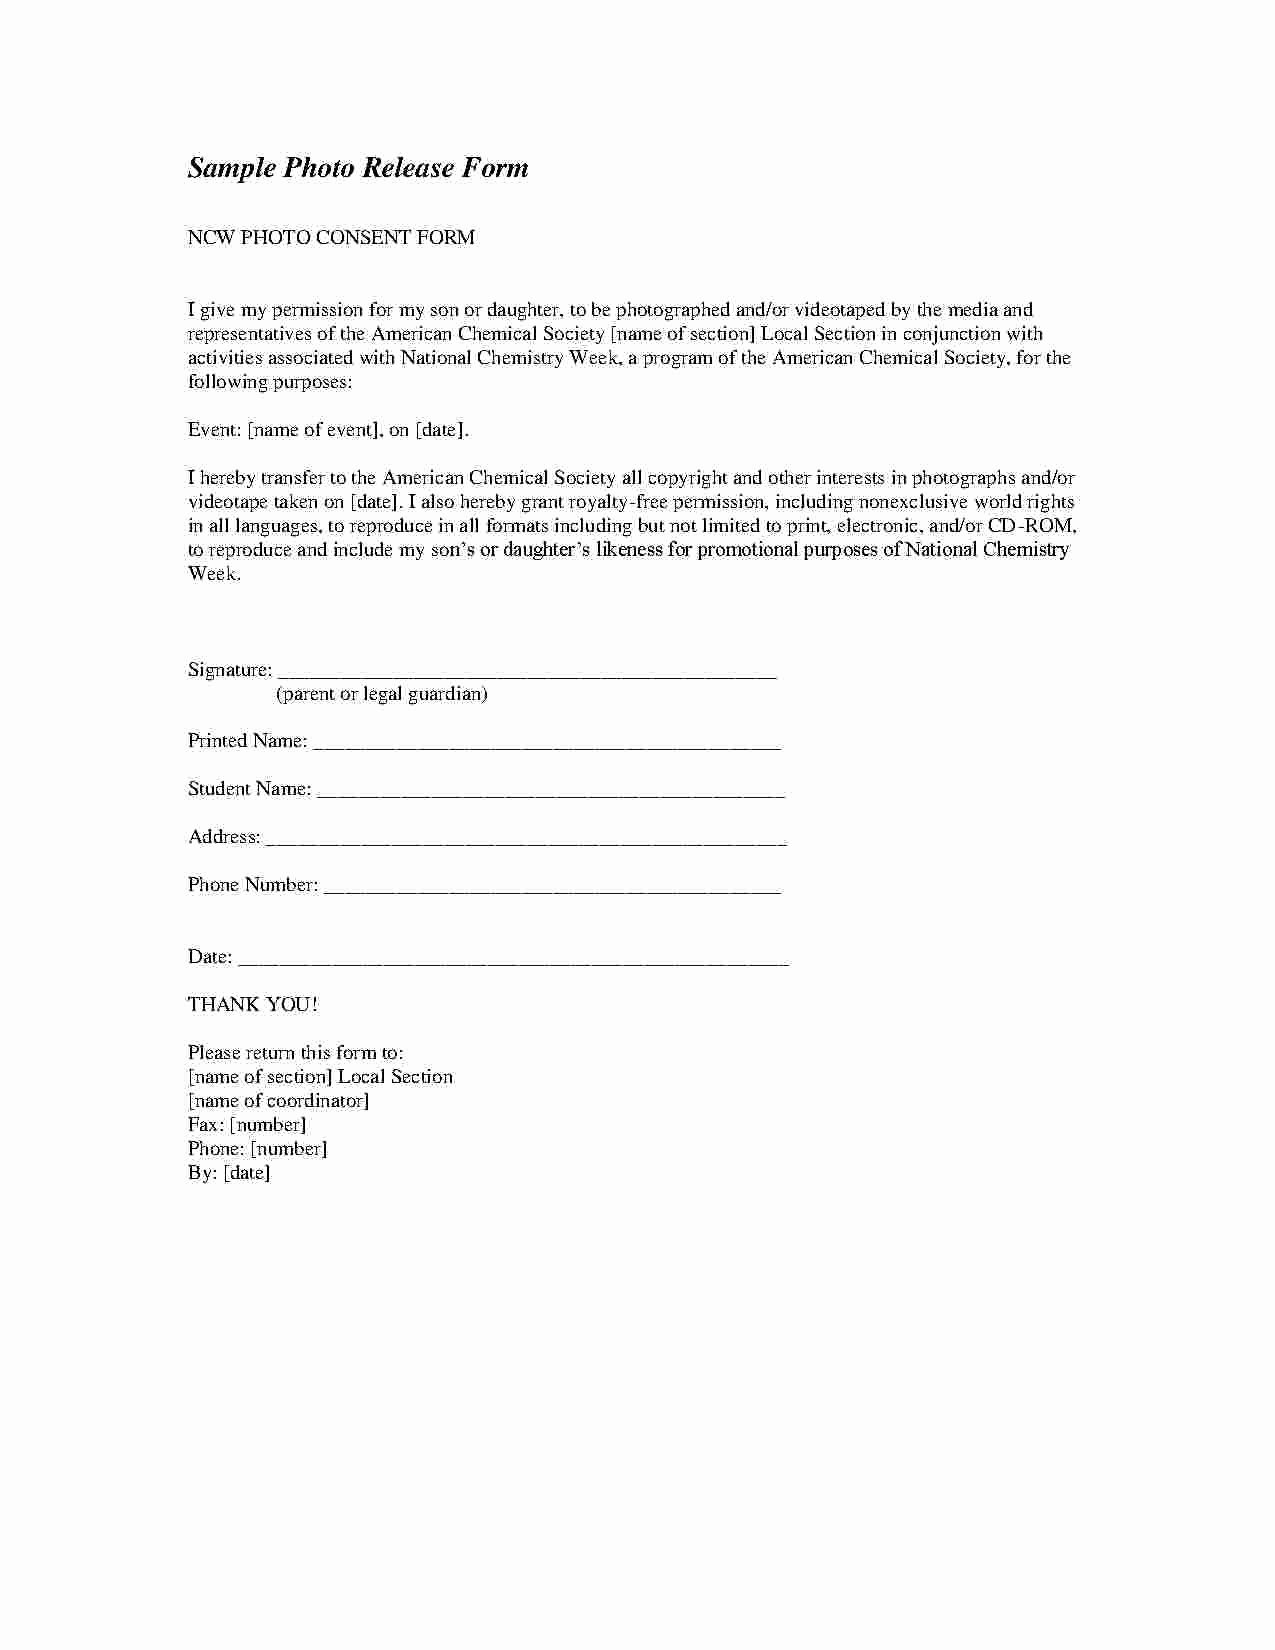 Photo Consent form Template Awesome Download Release form Style 8 Template for Free at